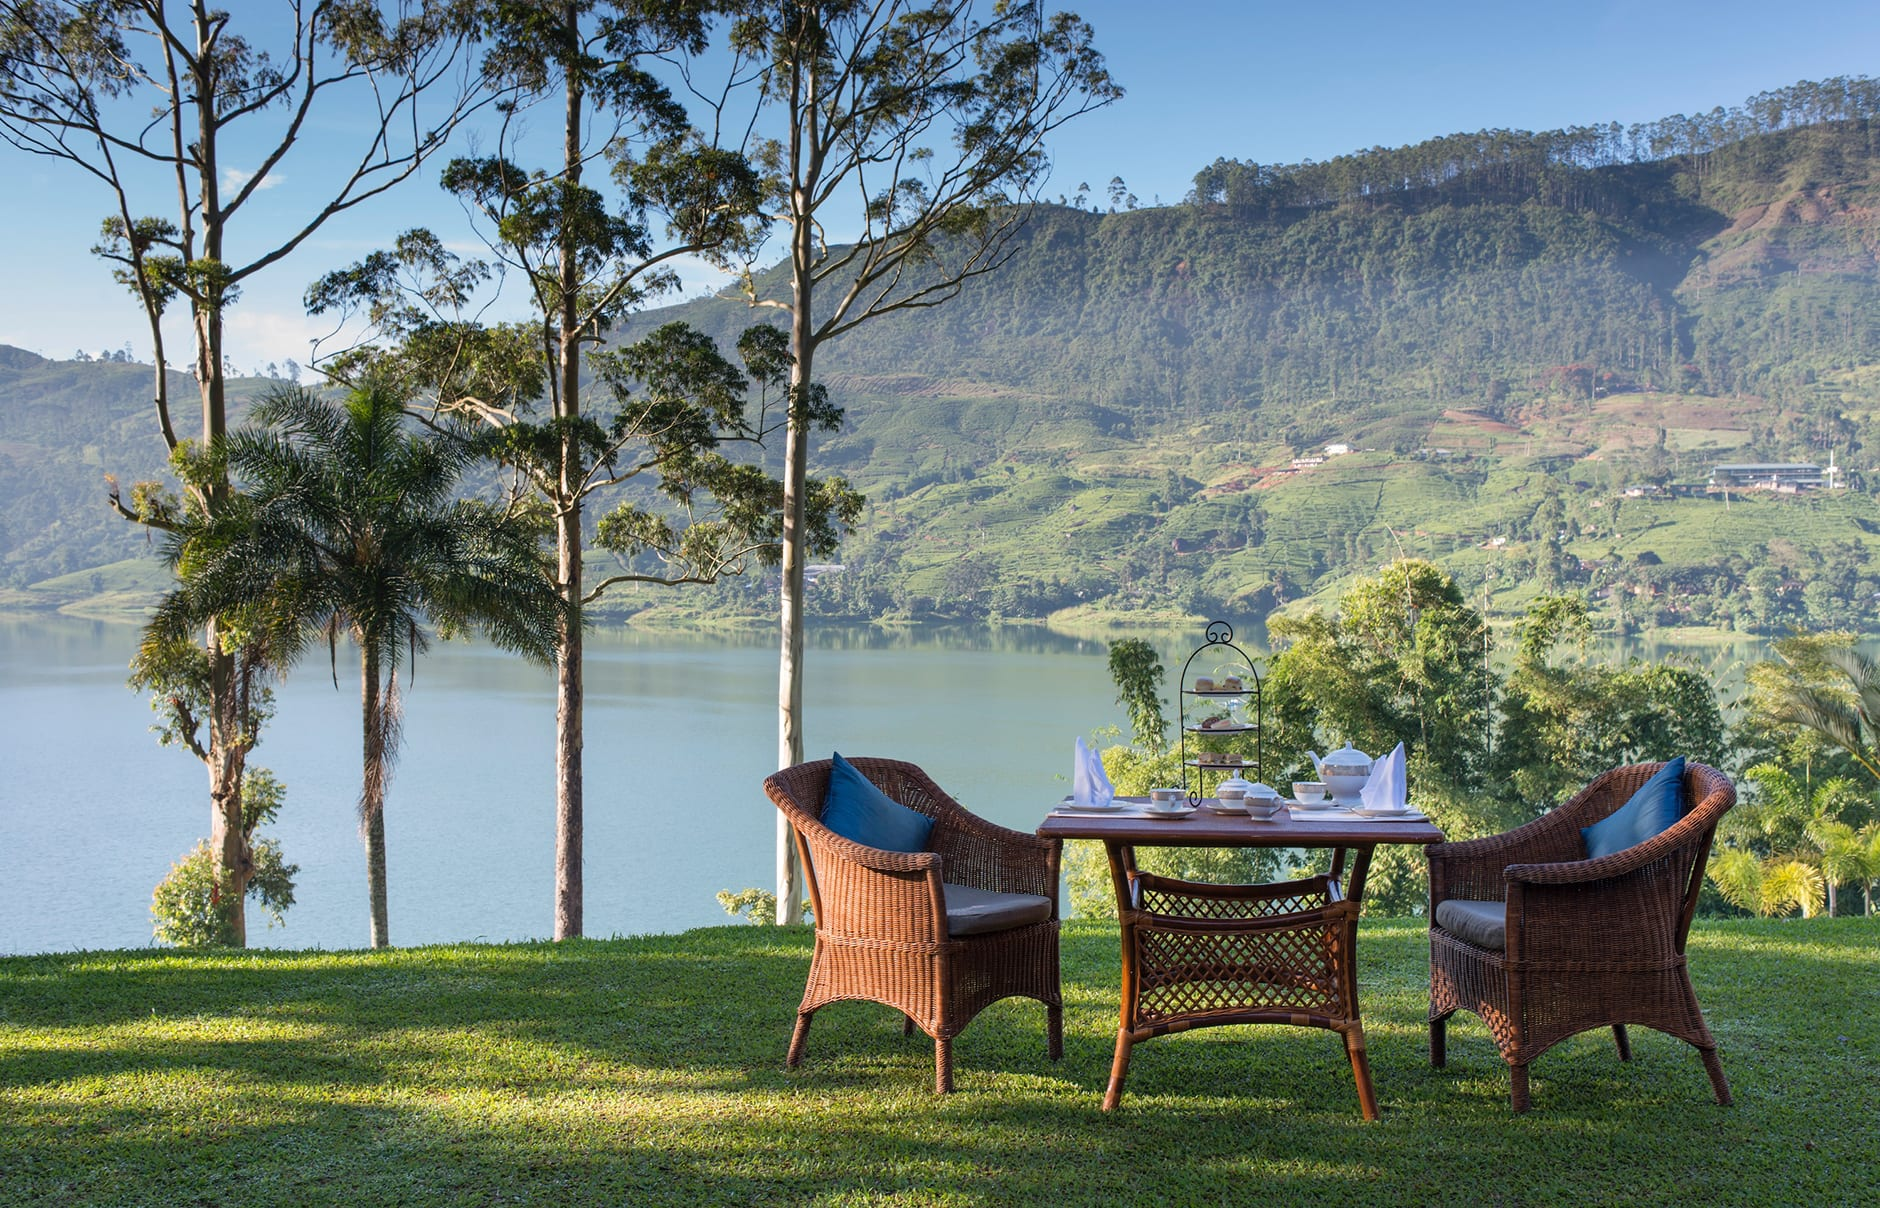 Summerville Bungalow. Ceylon Tea Trails, Sri Lanka. Hotel Review by TravelPlusStyle. Photo © Resplendent Ceylon